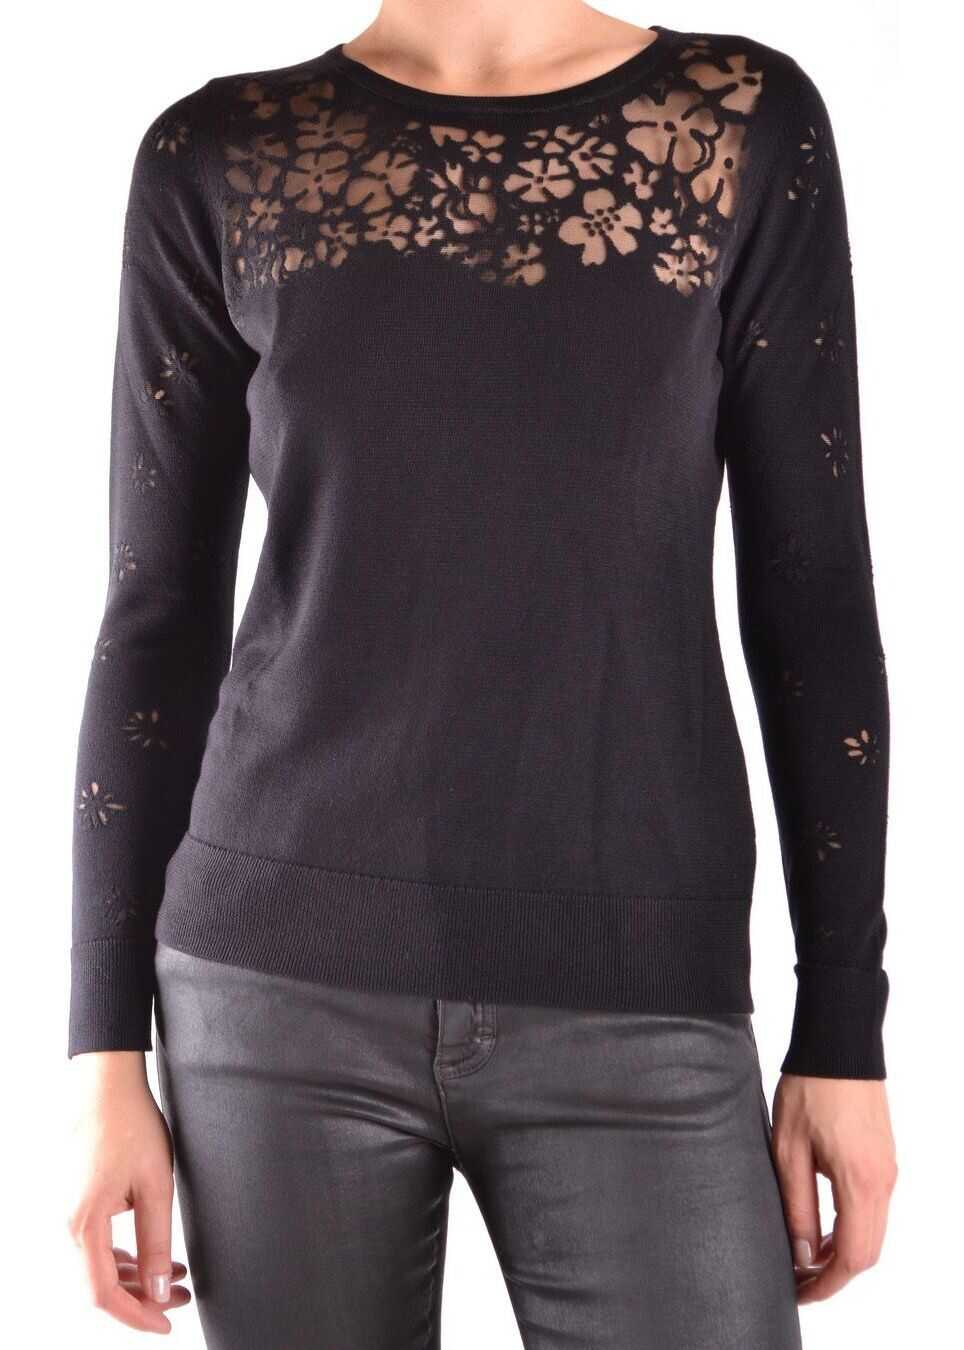 Michael Kors Viscose Sweater BLACK